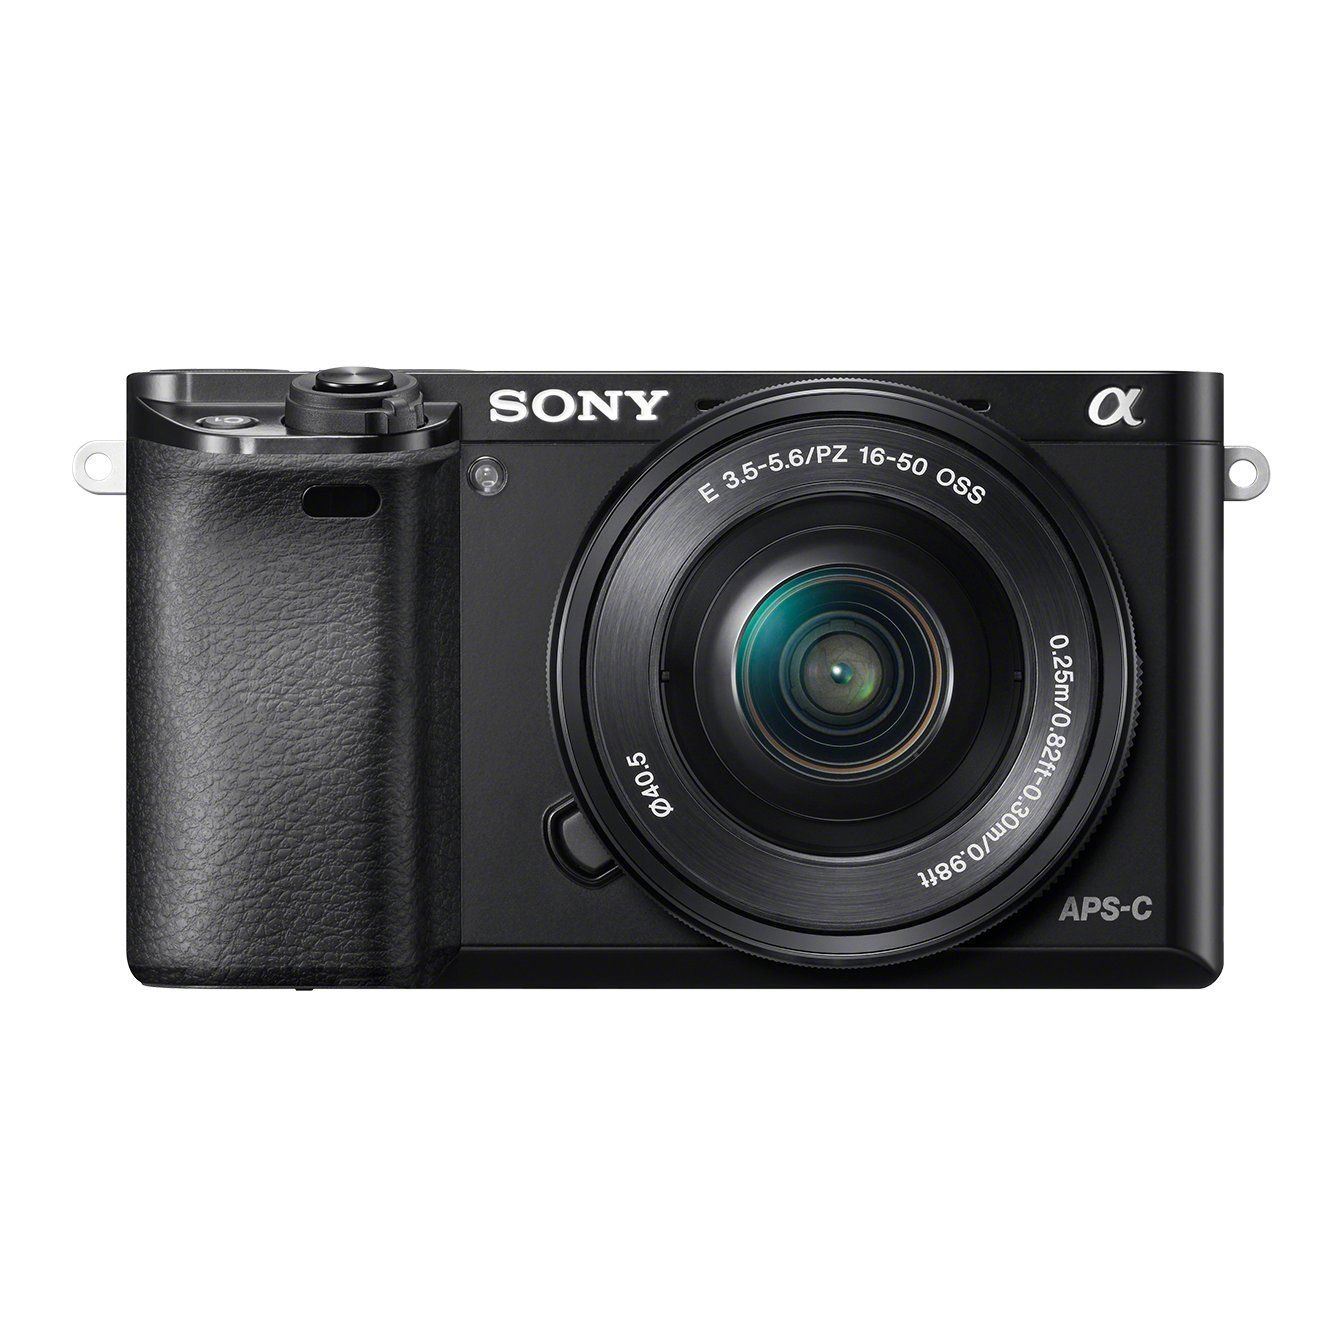 Sony ILCE6000LB Compact System Camera with SELP1650 Lens Kit (Fast Auto Focus, 24.3 MP, Electronic View Finder, Wi-Fi and NFC) - Black